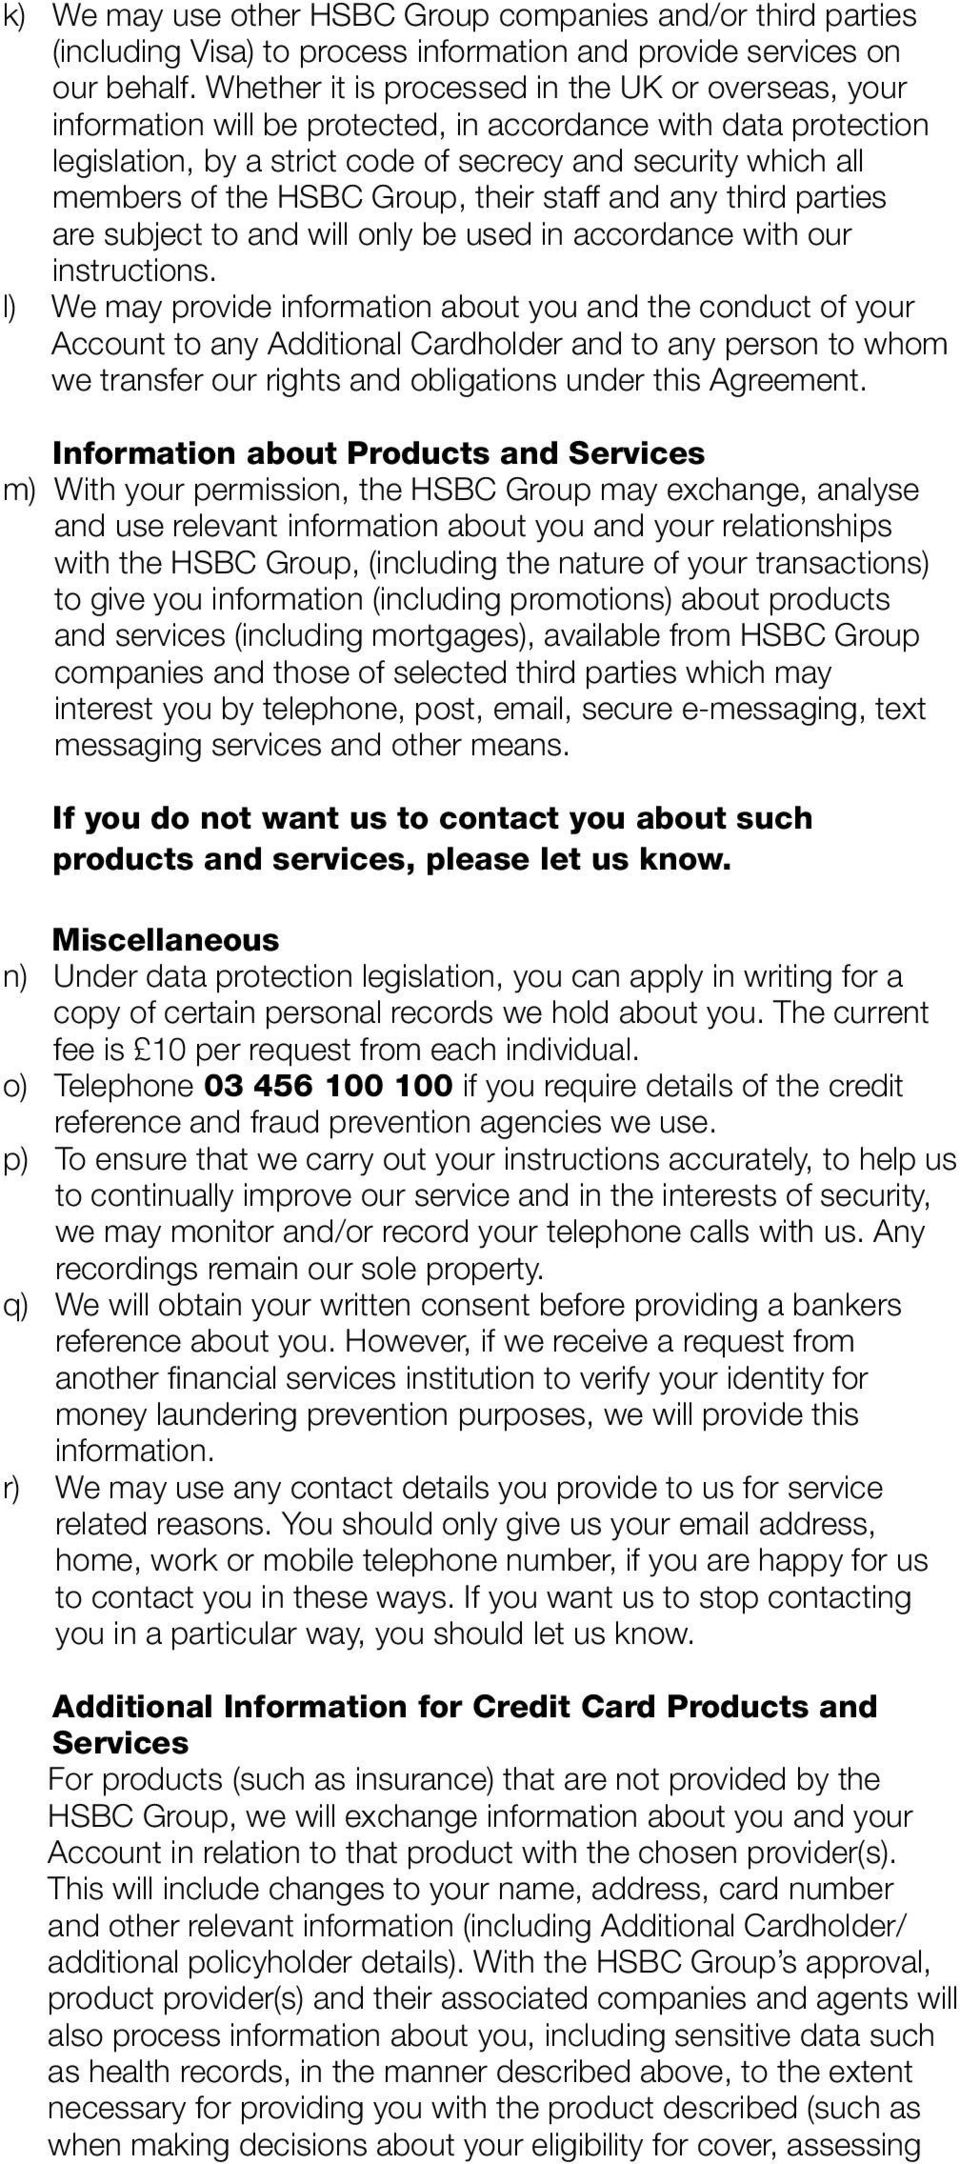 HSBC Group, their staff and any third parties are subject to and will only be used in accordance with our instructions.